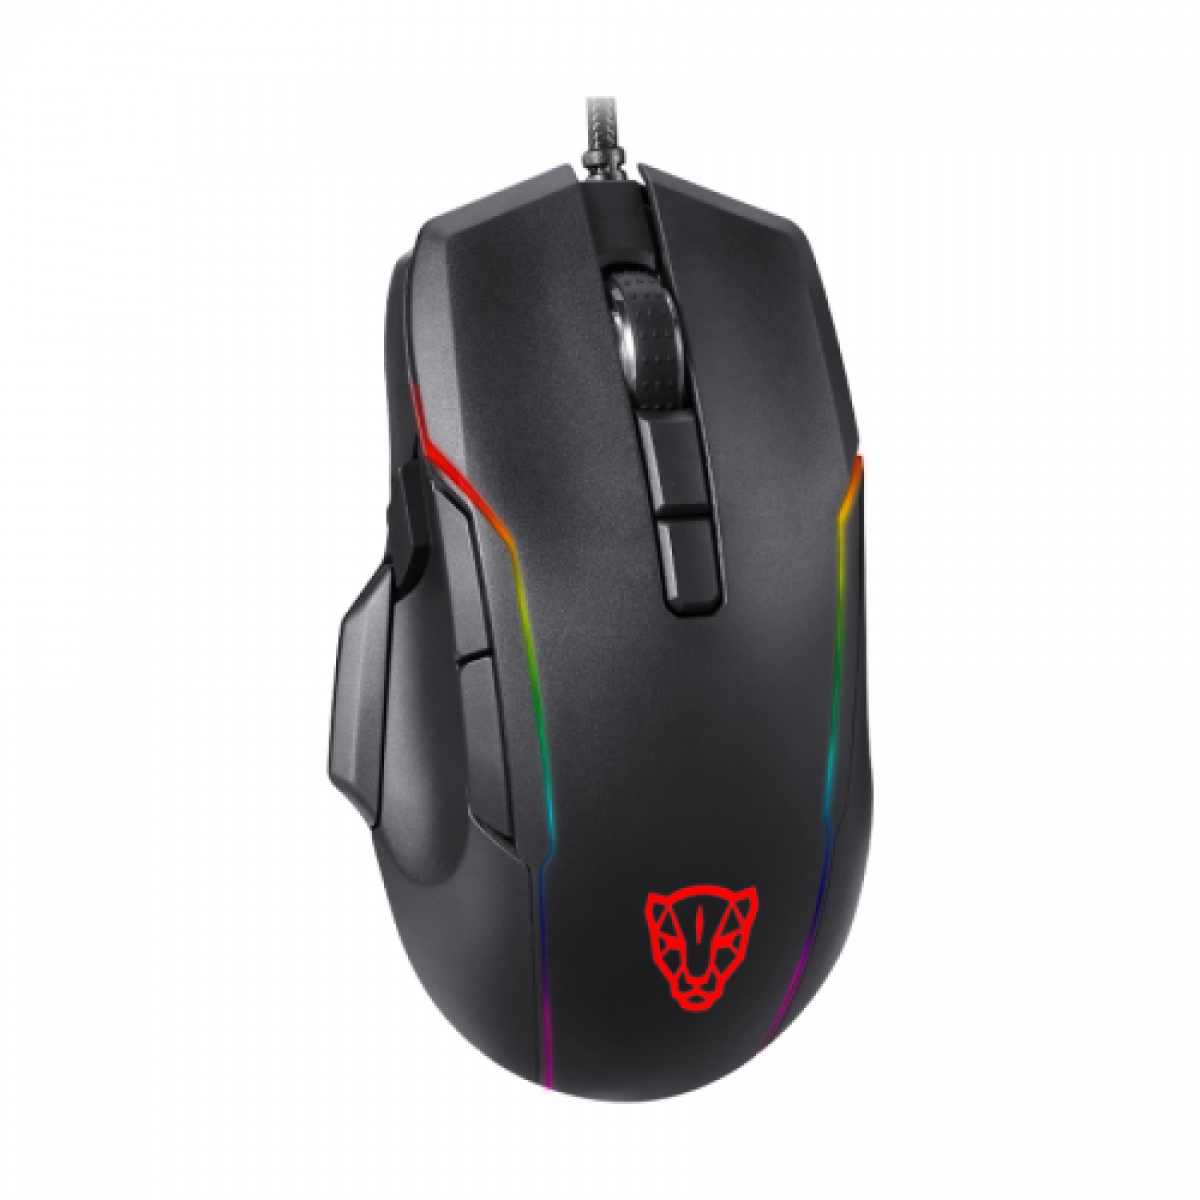 Mouse Gamer Motospeed V90 5000 DPI, RGB Backlight, Black, FMSMS0100PTO